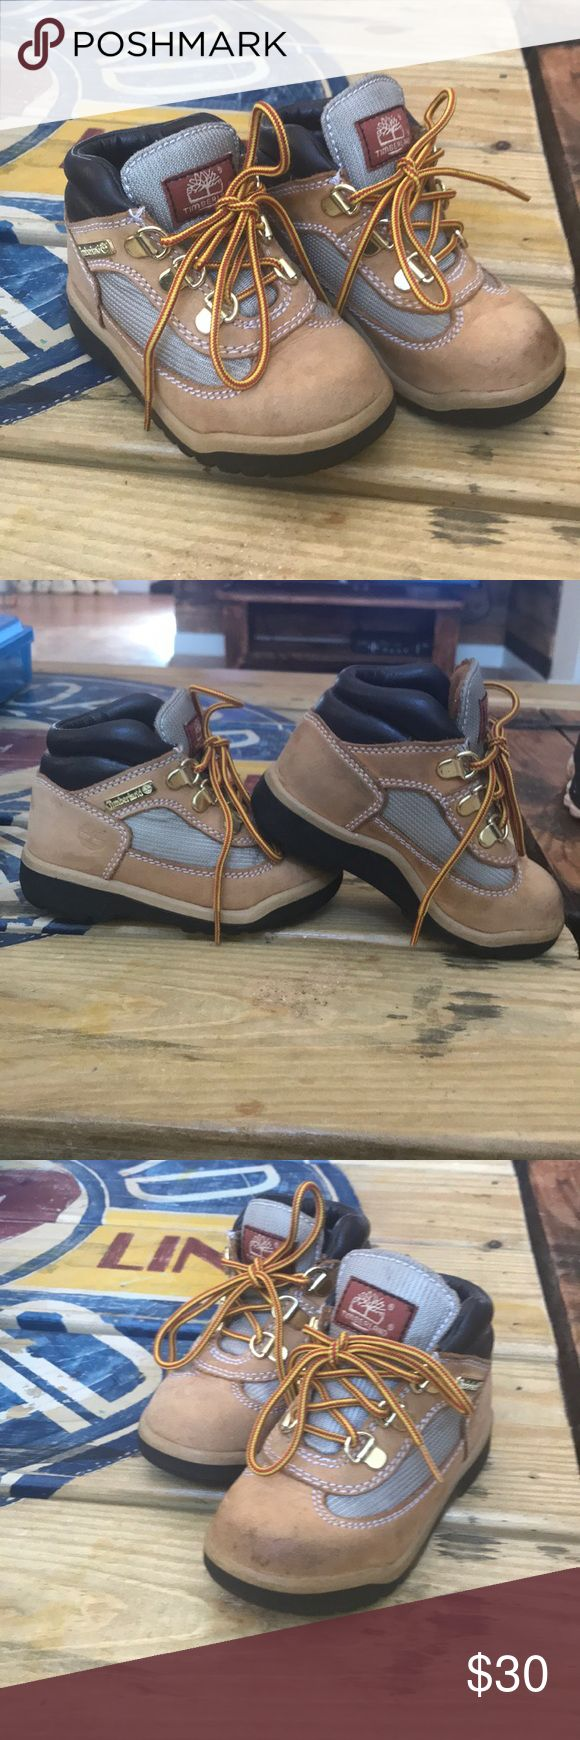 Toddler 8 Timberland boots. Pretty nice shape.  Few spots but no damage.  Treads excellent. Timberland Shoes Boots